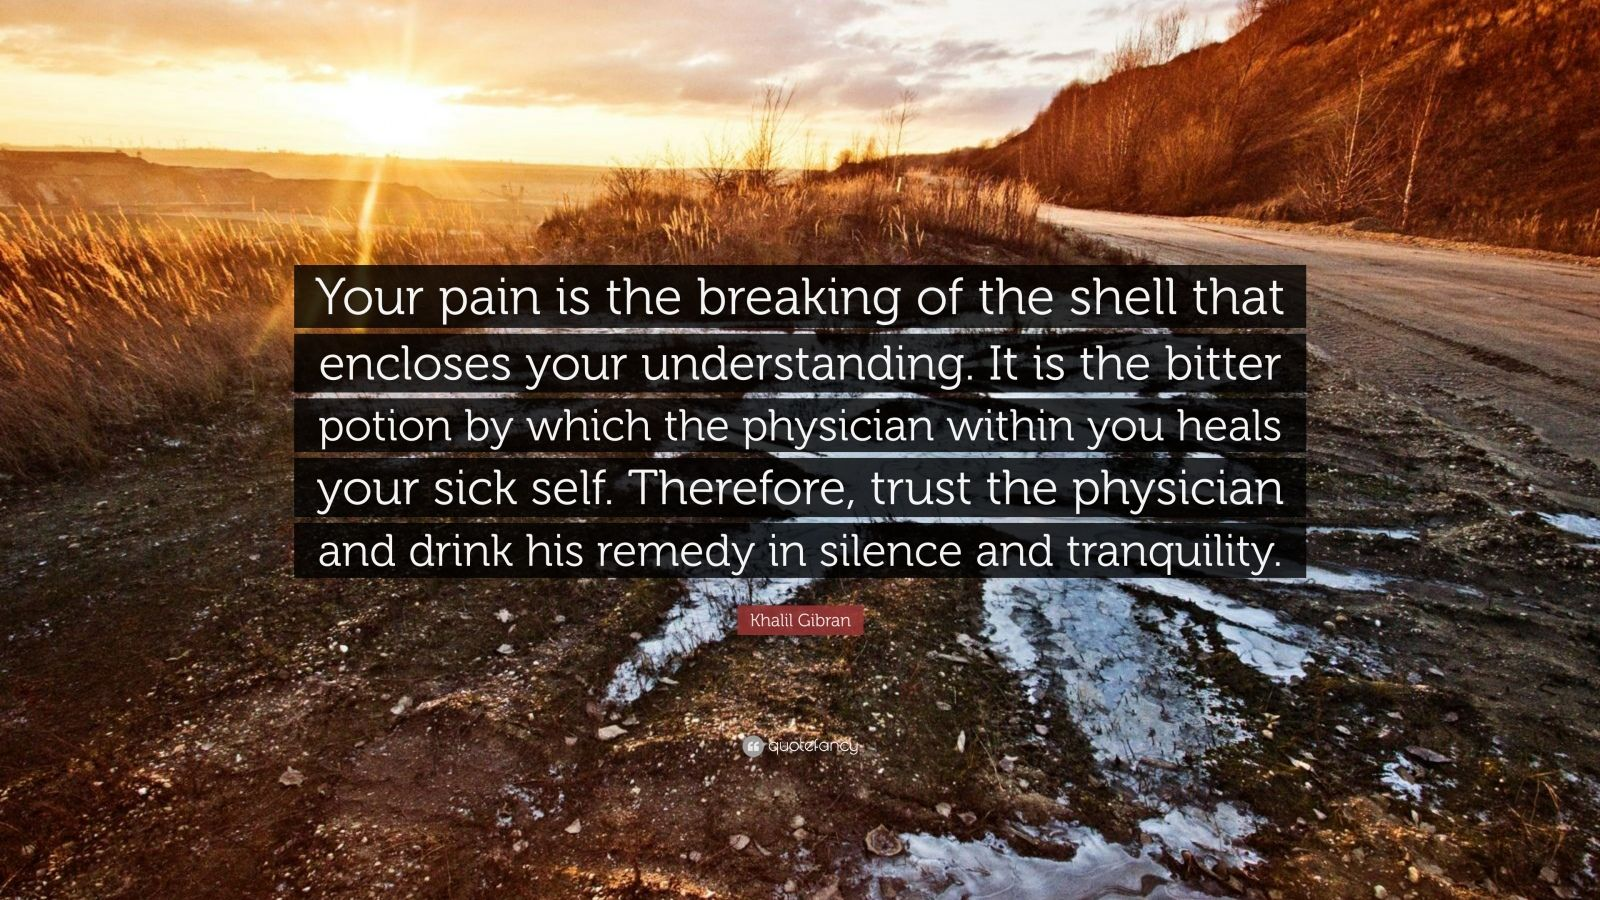 """Khalil Gibran Quote: """"Your pain is the breaking of the shell that encloses your understanding. It is the bitter potion by which the physician within you heals your sick self. Therefore, trust the physician and drink his remedy in silence and tranquility."""""""